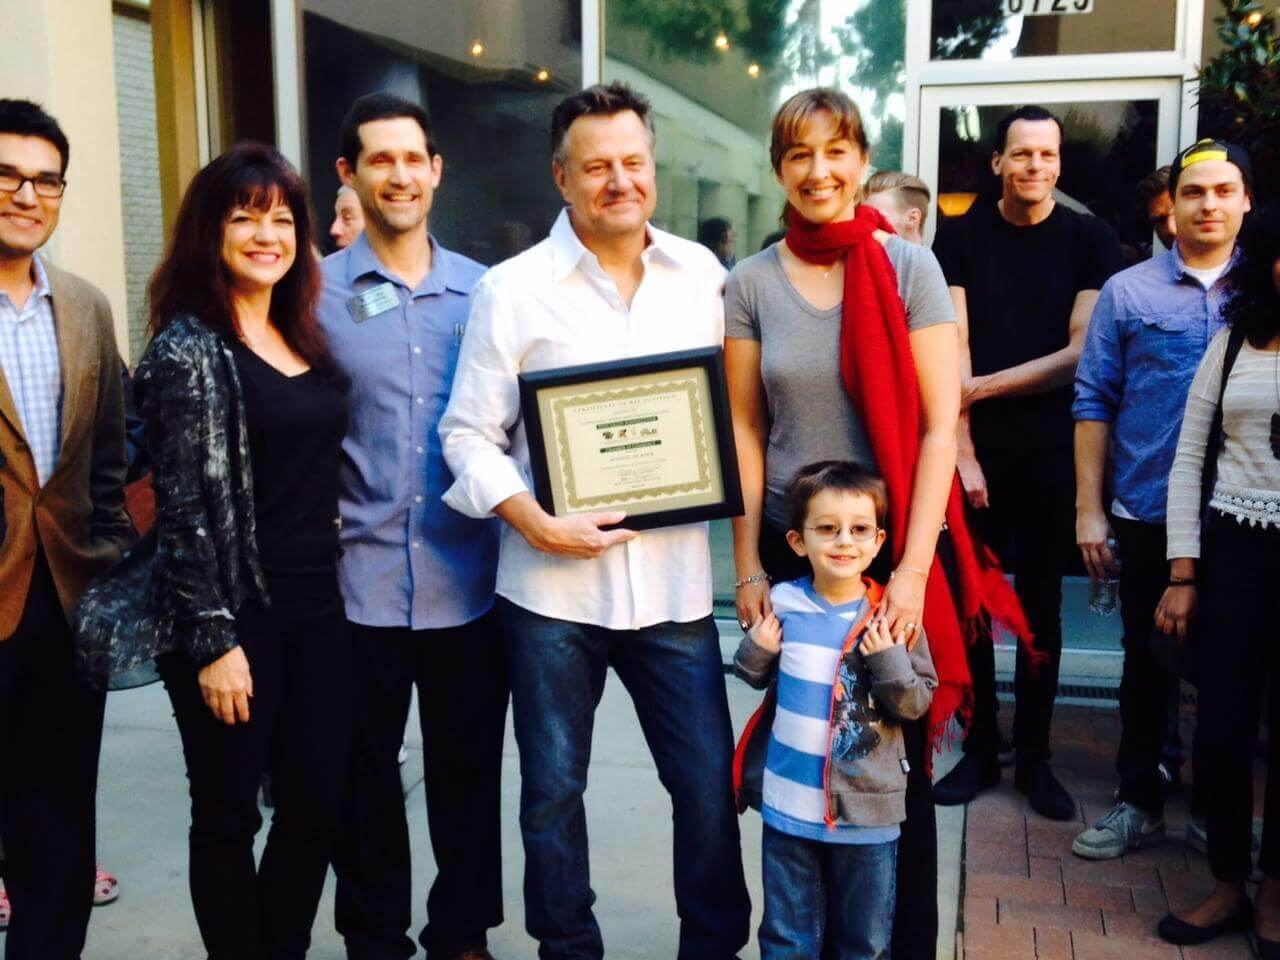 West Valley Chamber of Commerce Ribbon Cutting - MARCH 2015